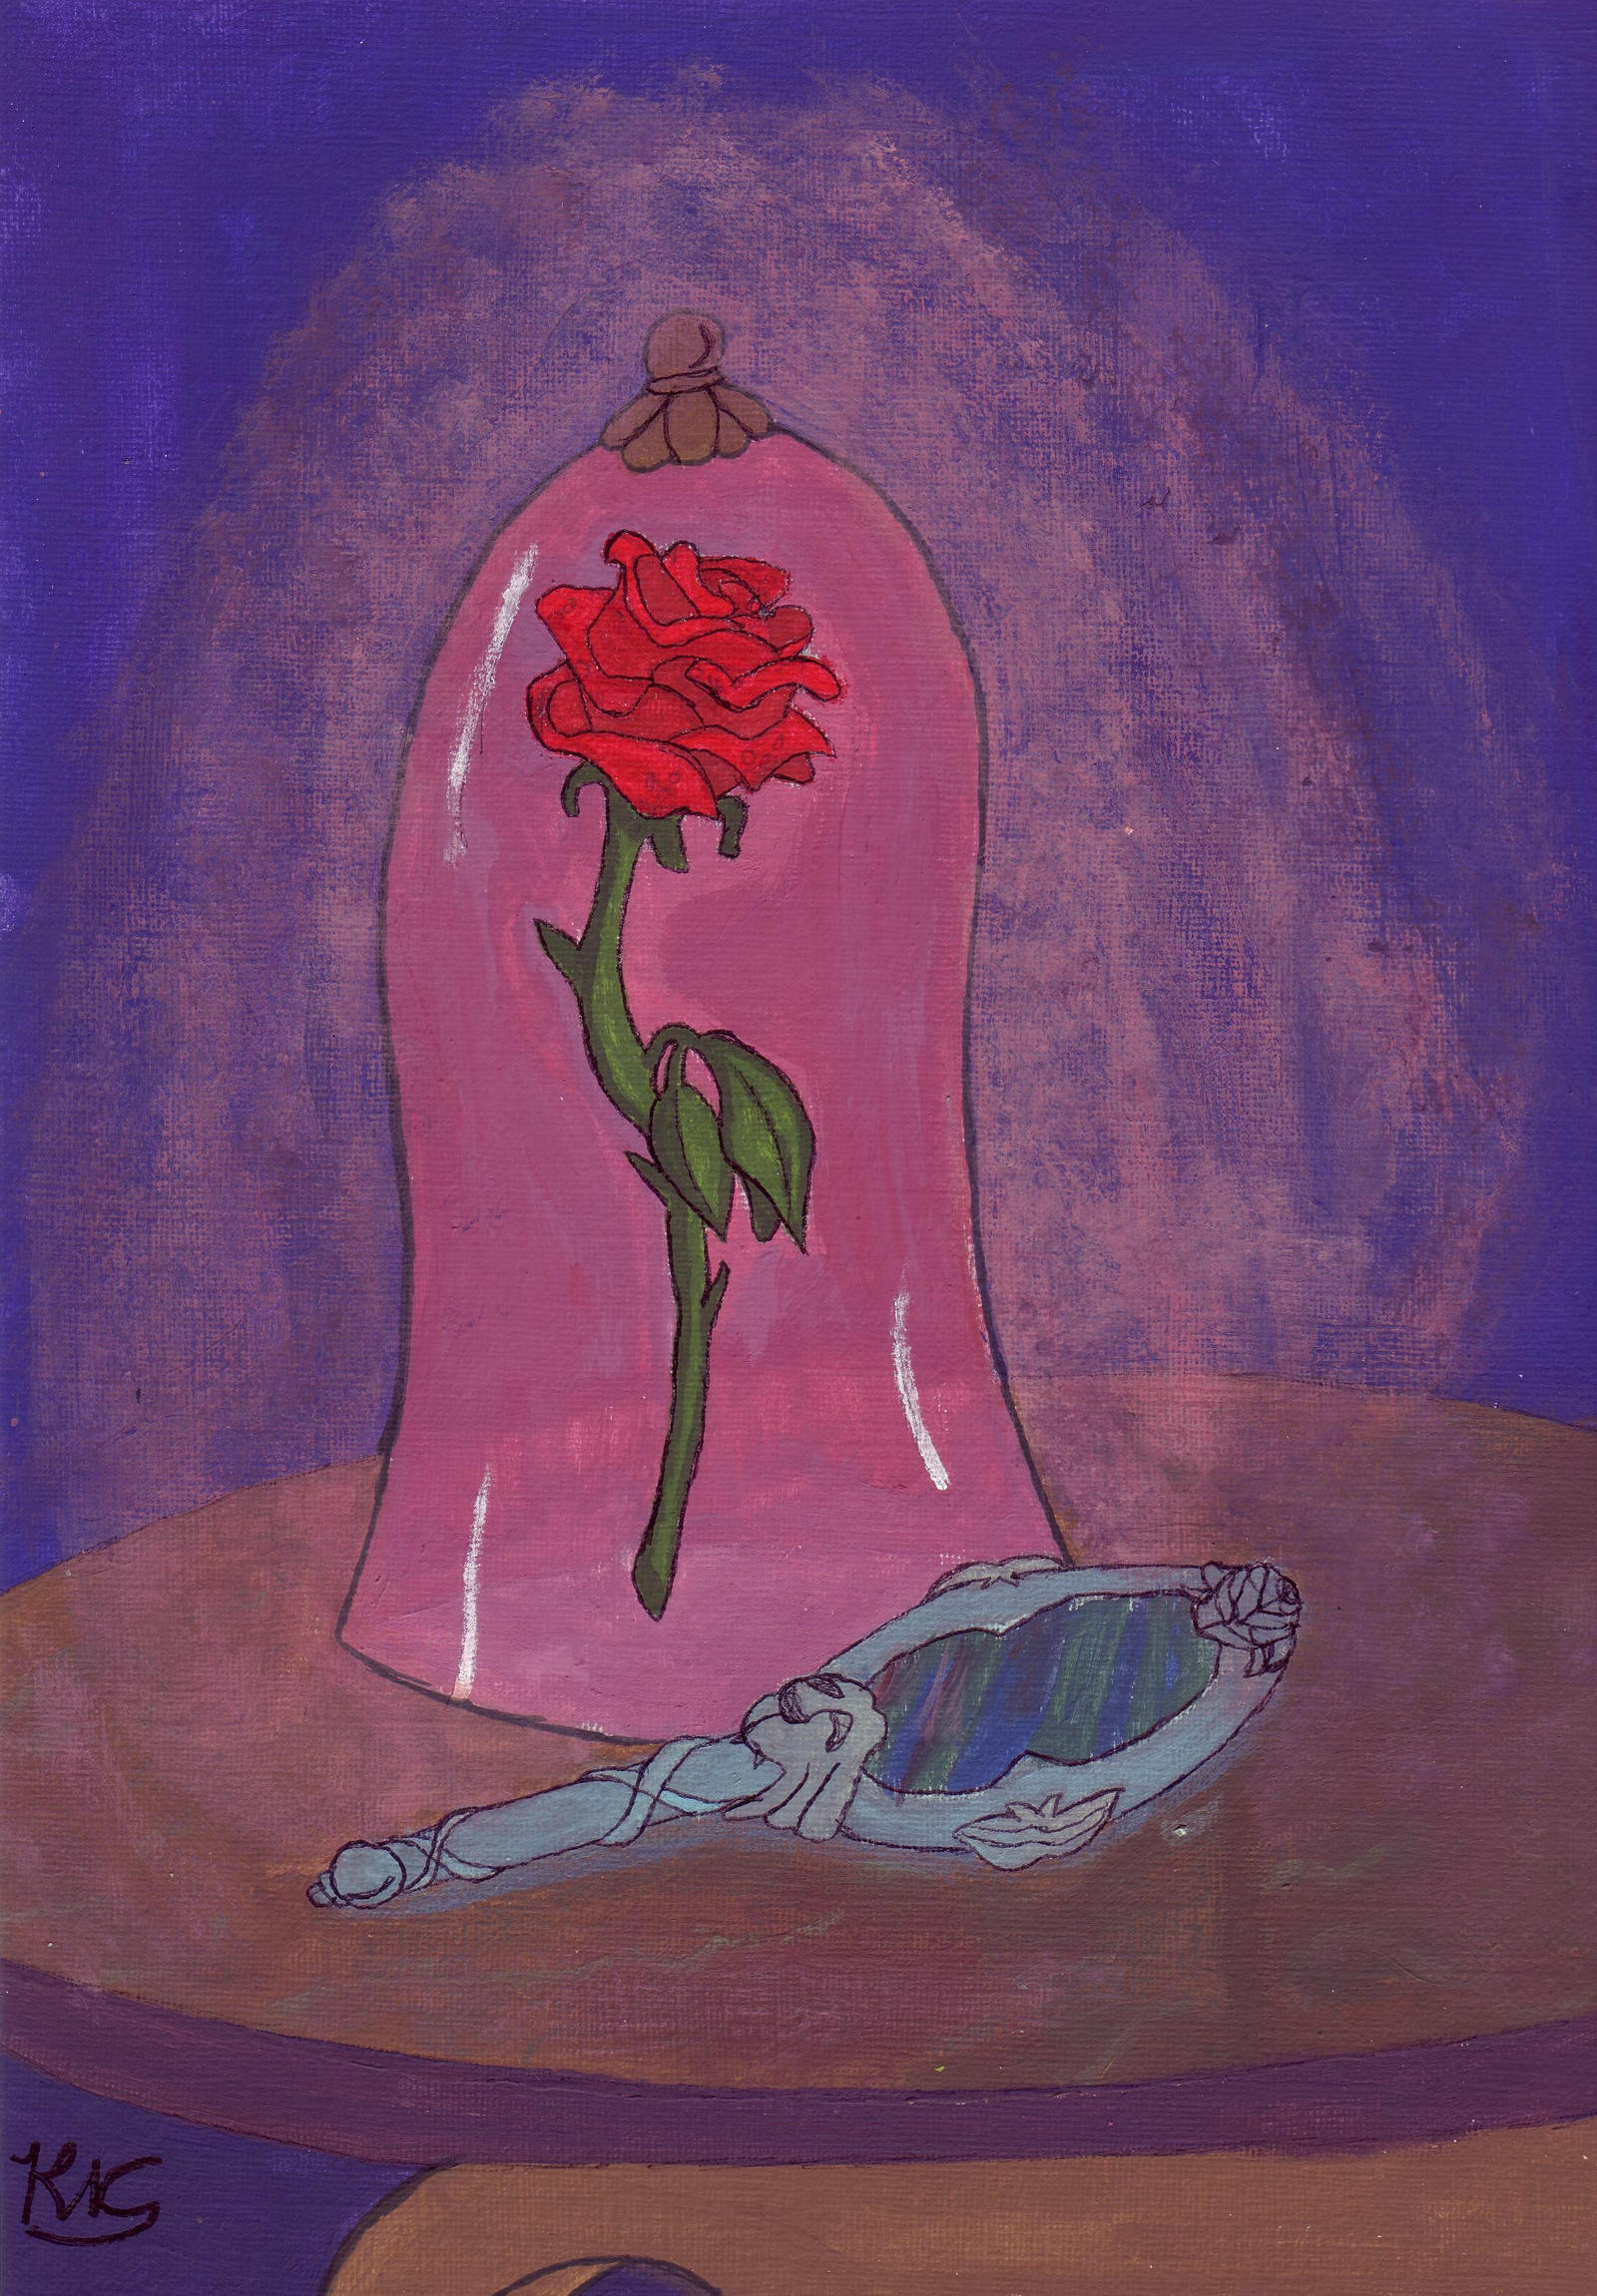 Beauty And The Beast Rose By Stillaintbovvered On Deviantart